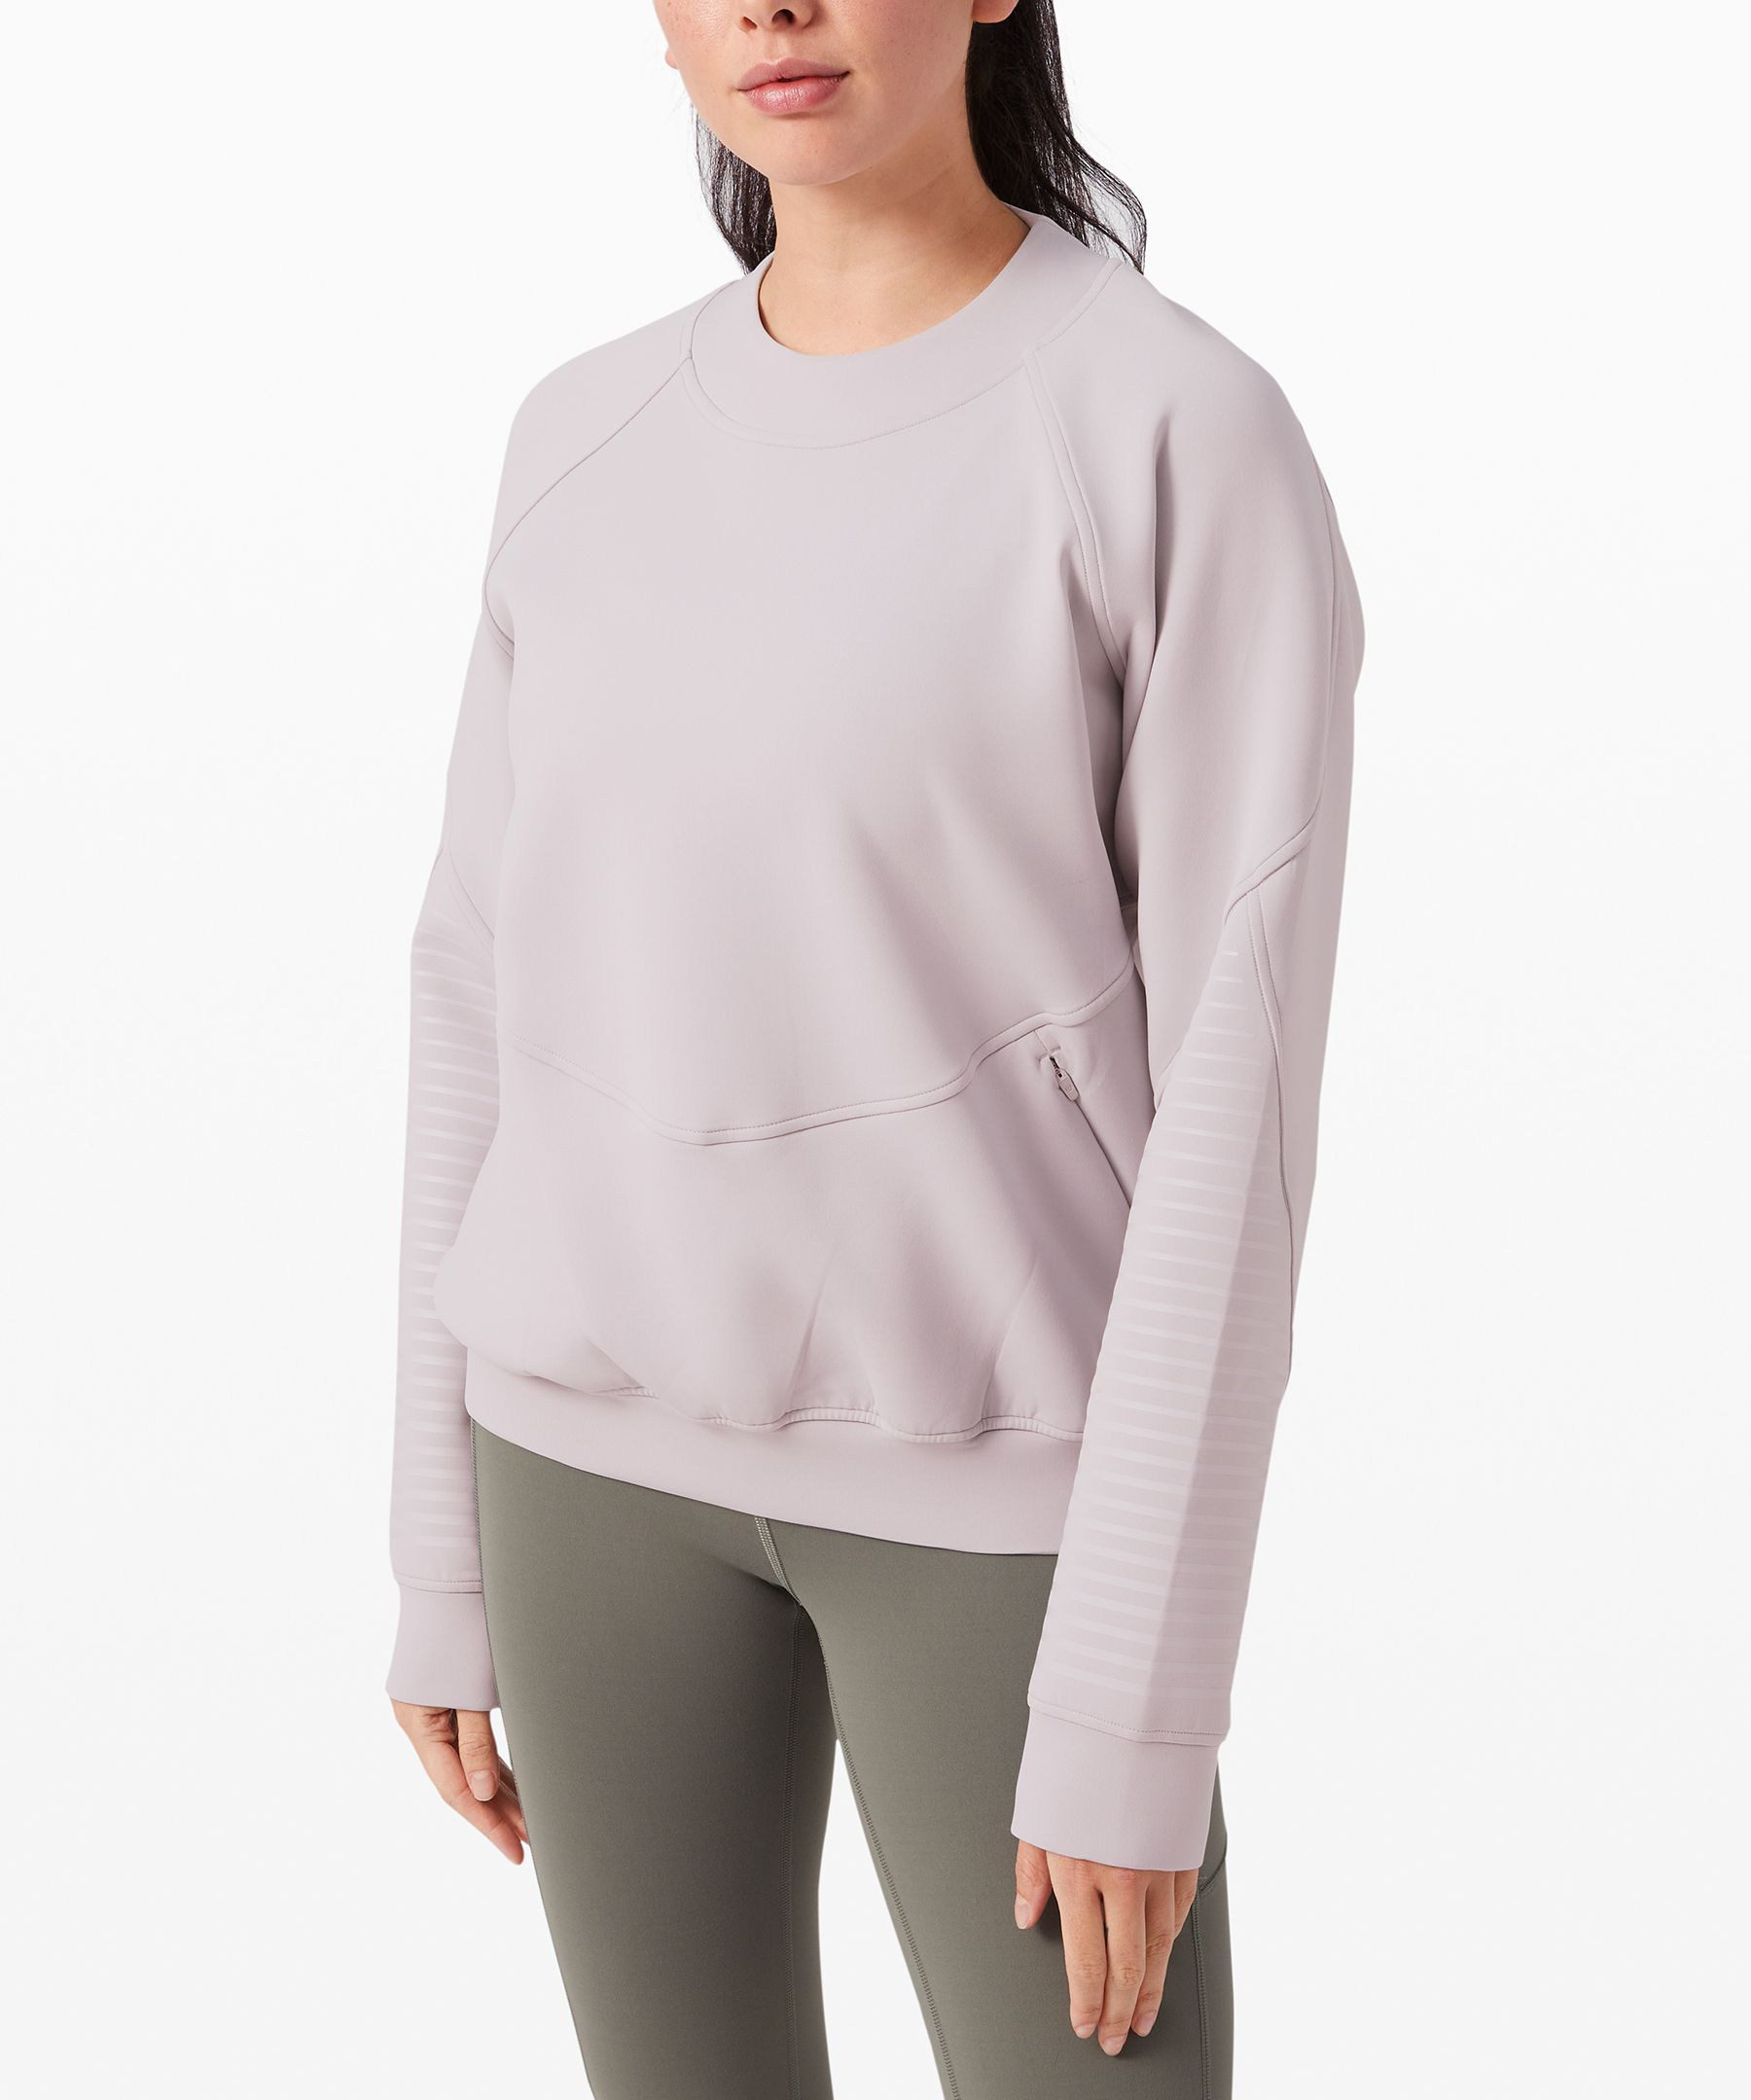 Gear up for your warm-ups and  keep your cool-downs looking  fresh in this relaxed crew  neck, made with room to layer  over sweaty gear.